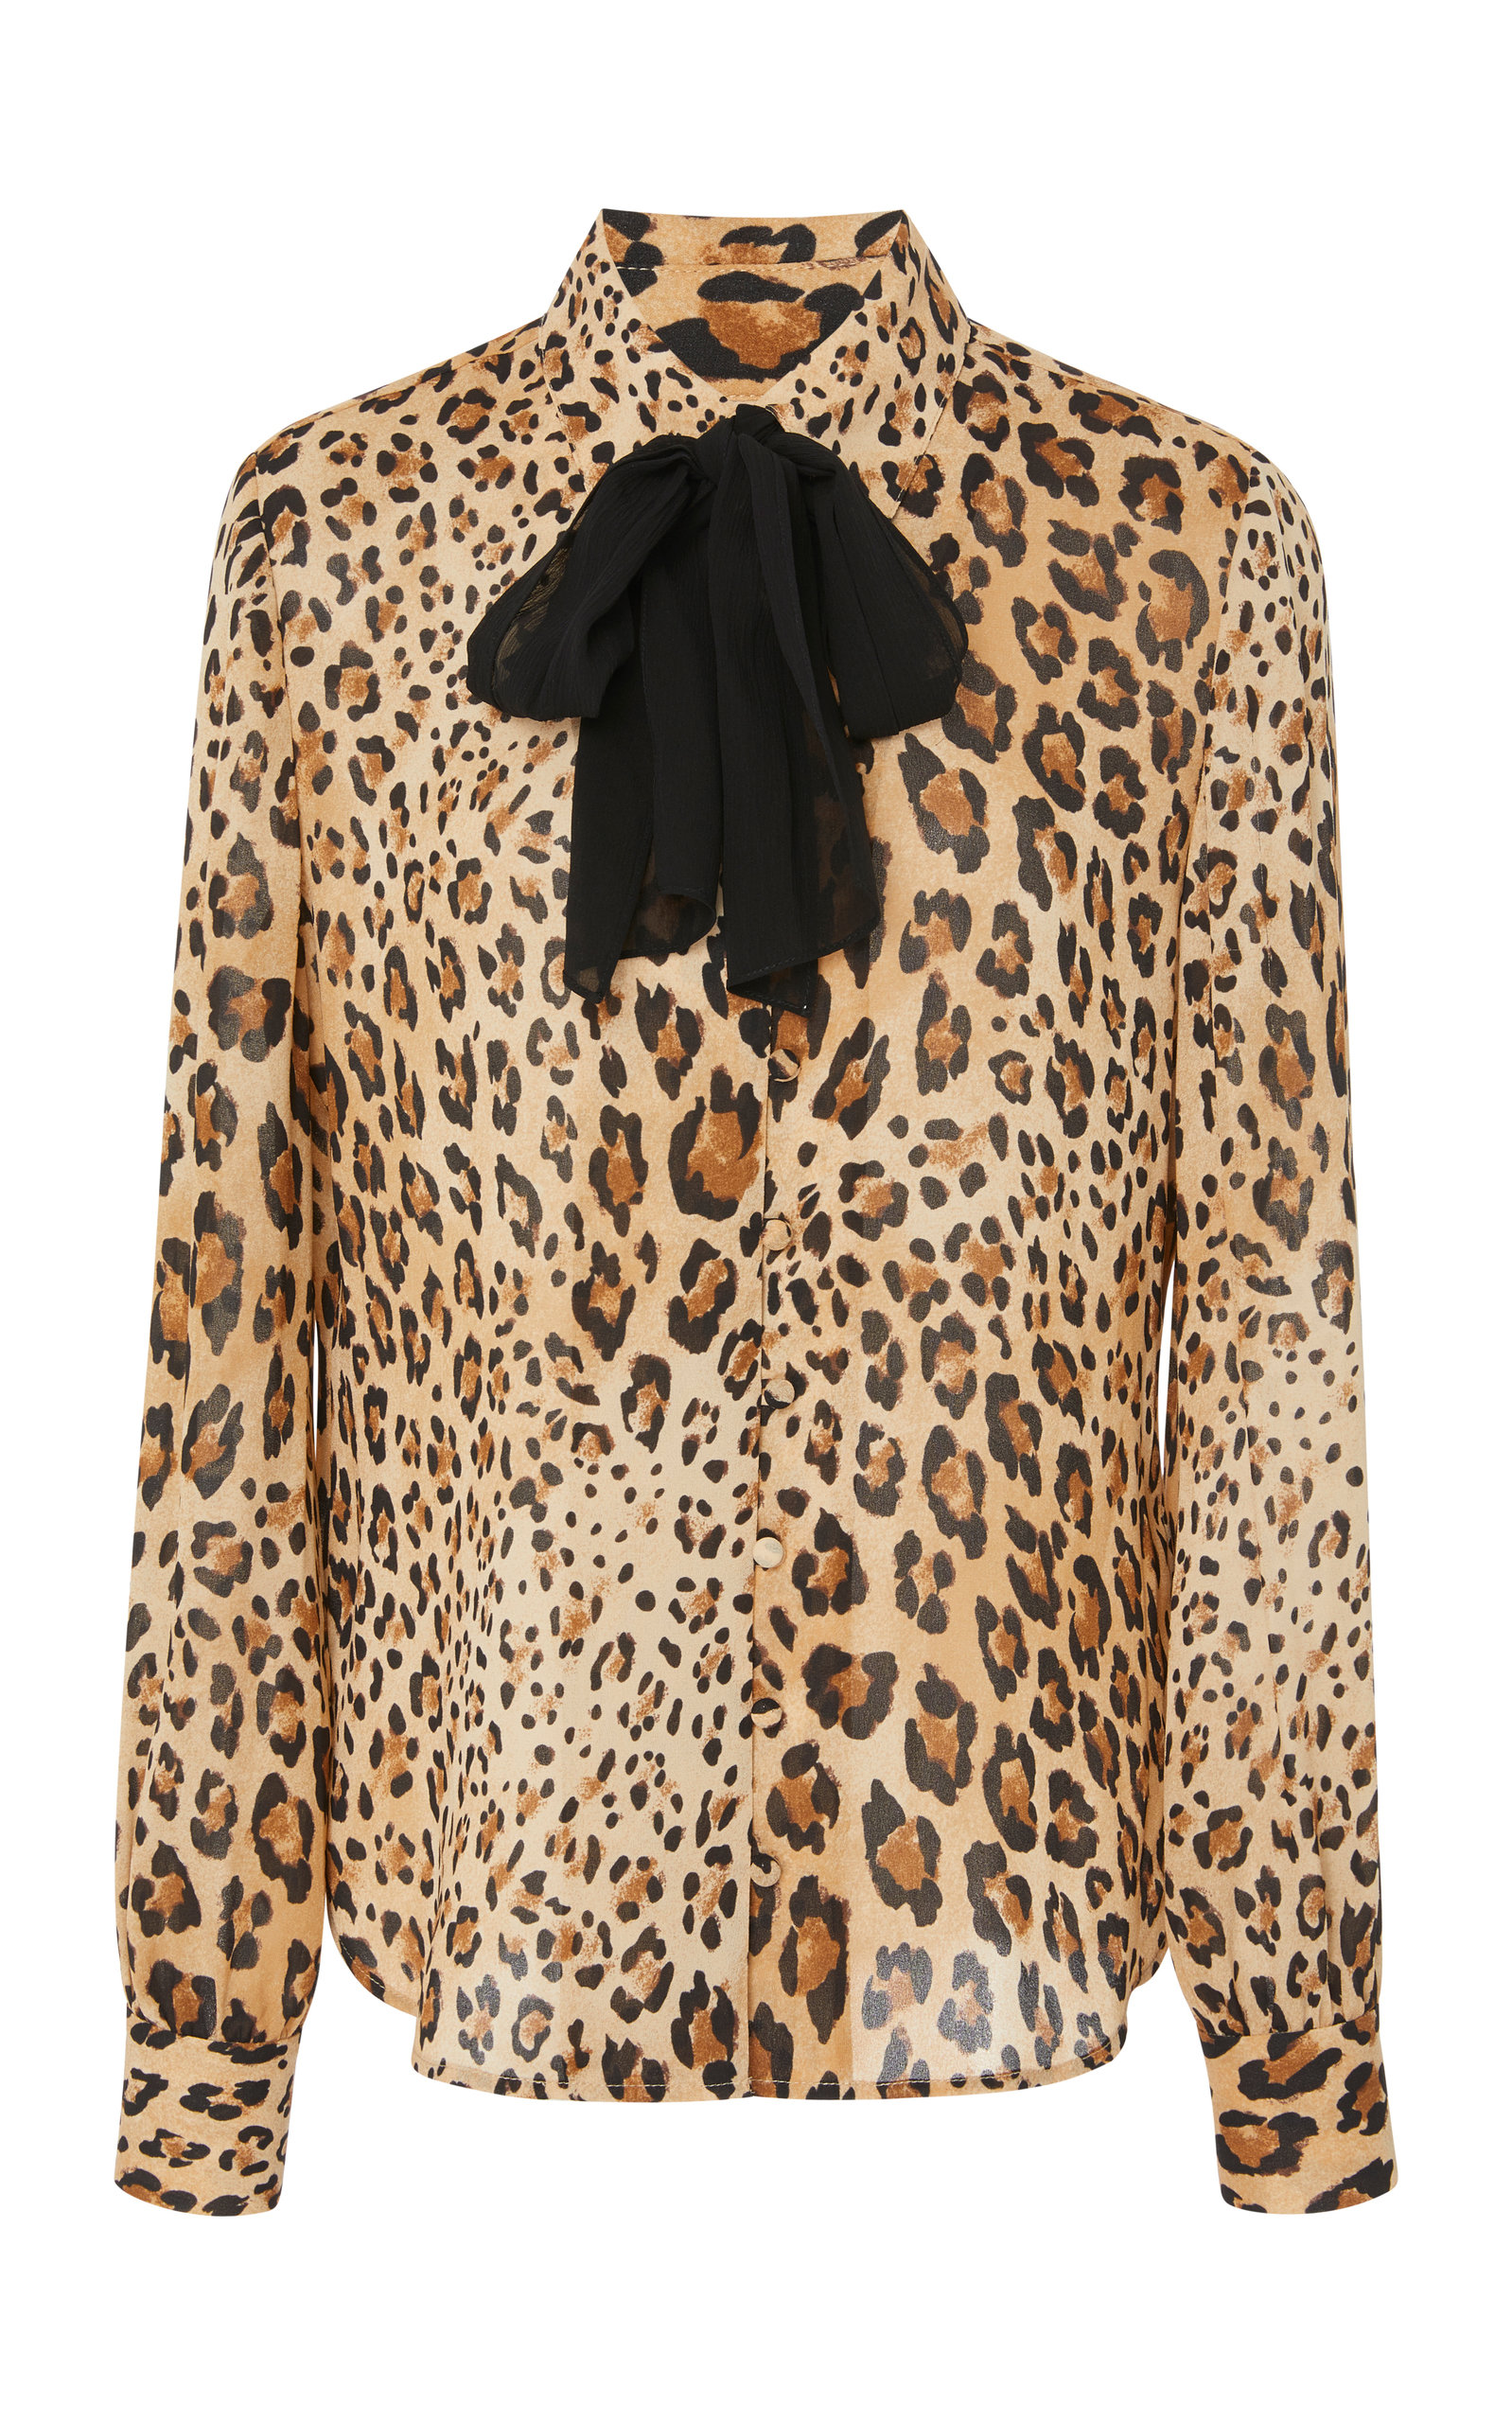 large_frame-denim-animal-pussy-bow-leopard-print-silk-chiffon-blouse.jpg